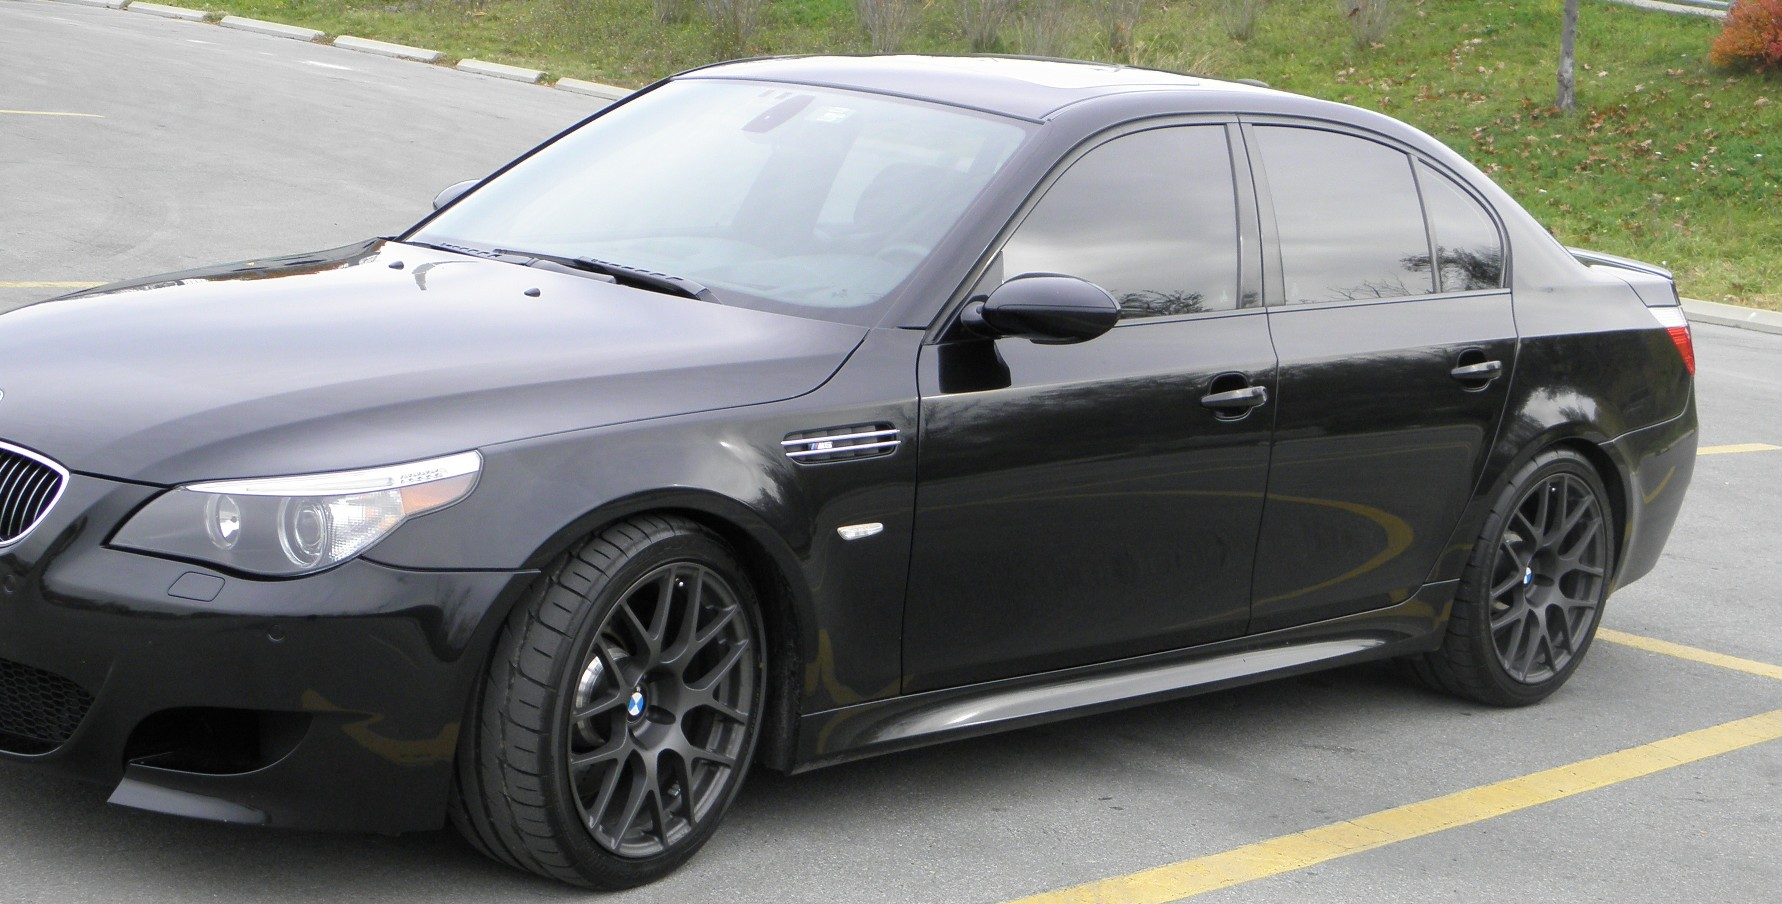 Best Wheels On E Post Your Pics BMW M Forum And M Forums - Best bmw wheels